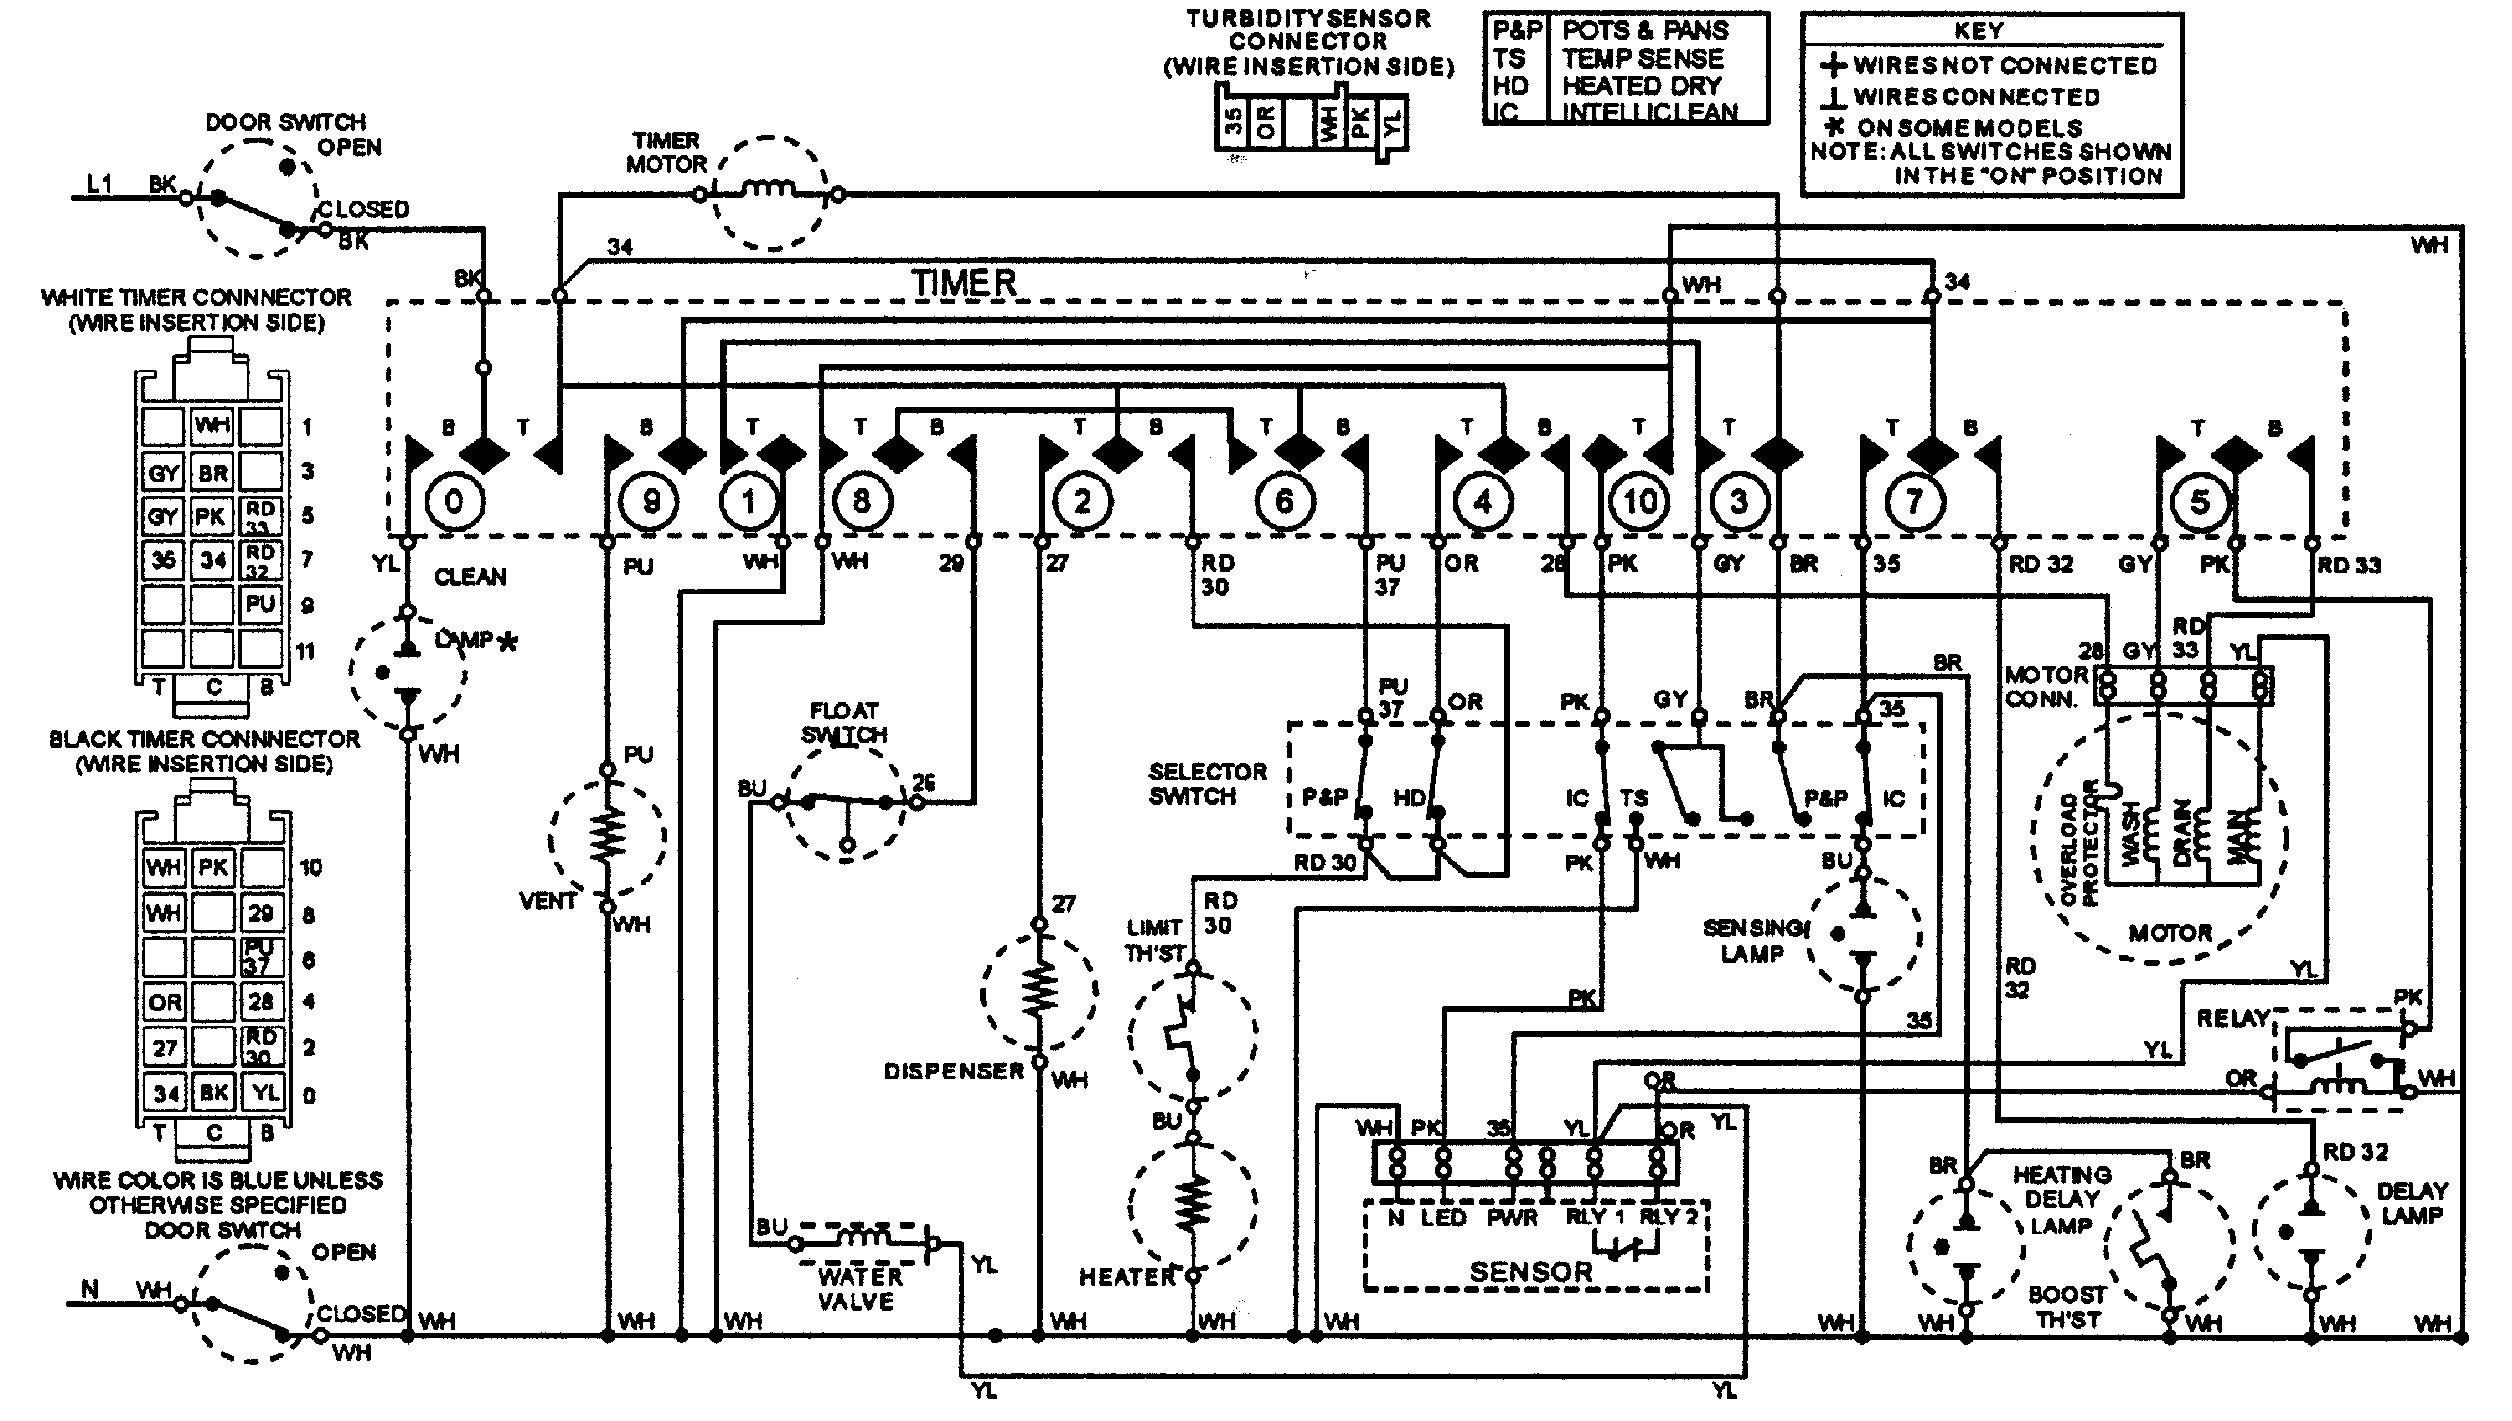 maytag centennial washer wiring diagram Download-maytag centennial washer  wiring diagram Fresh Glamorous Maytag Motor